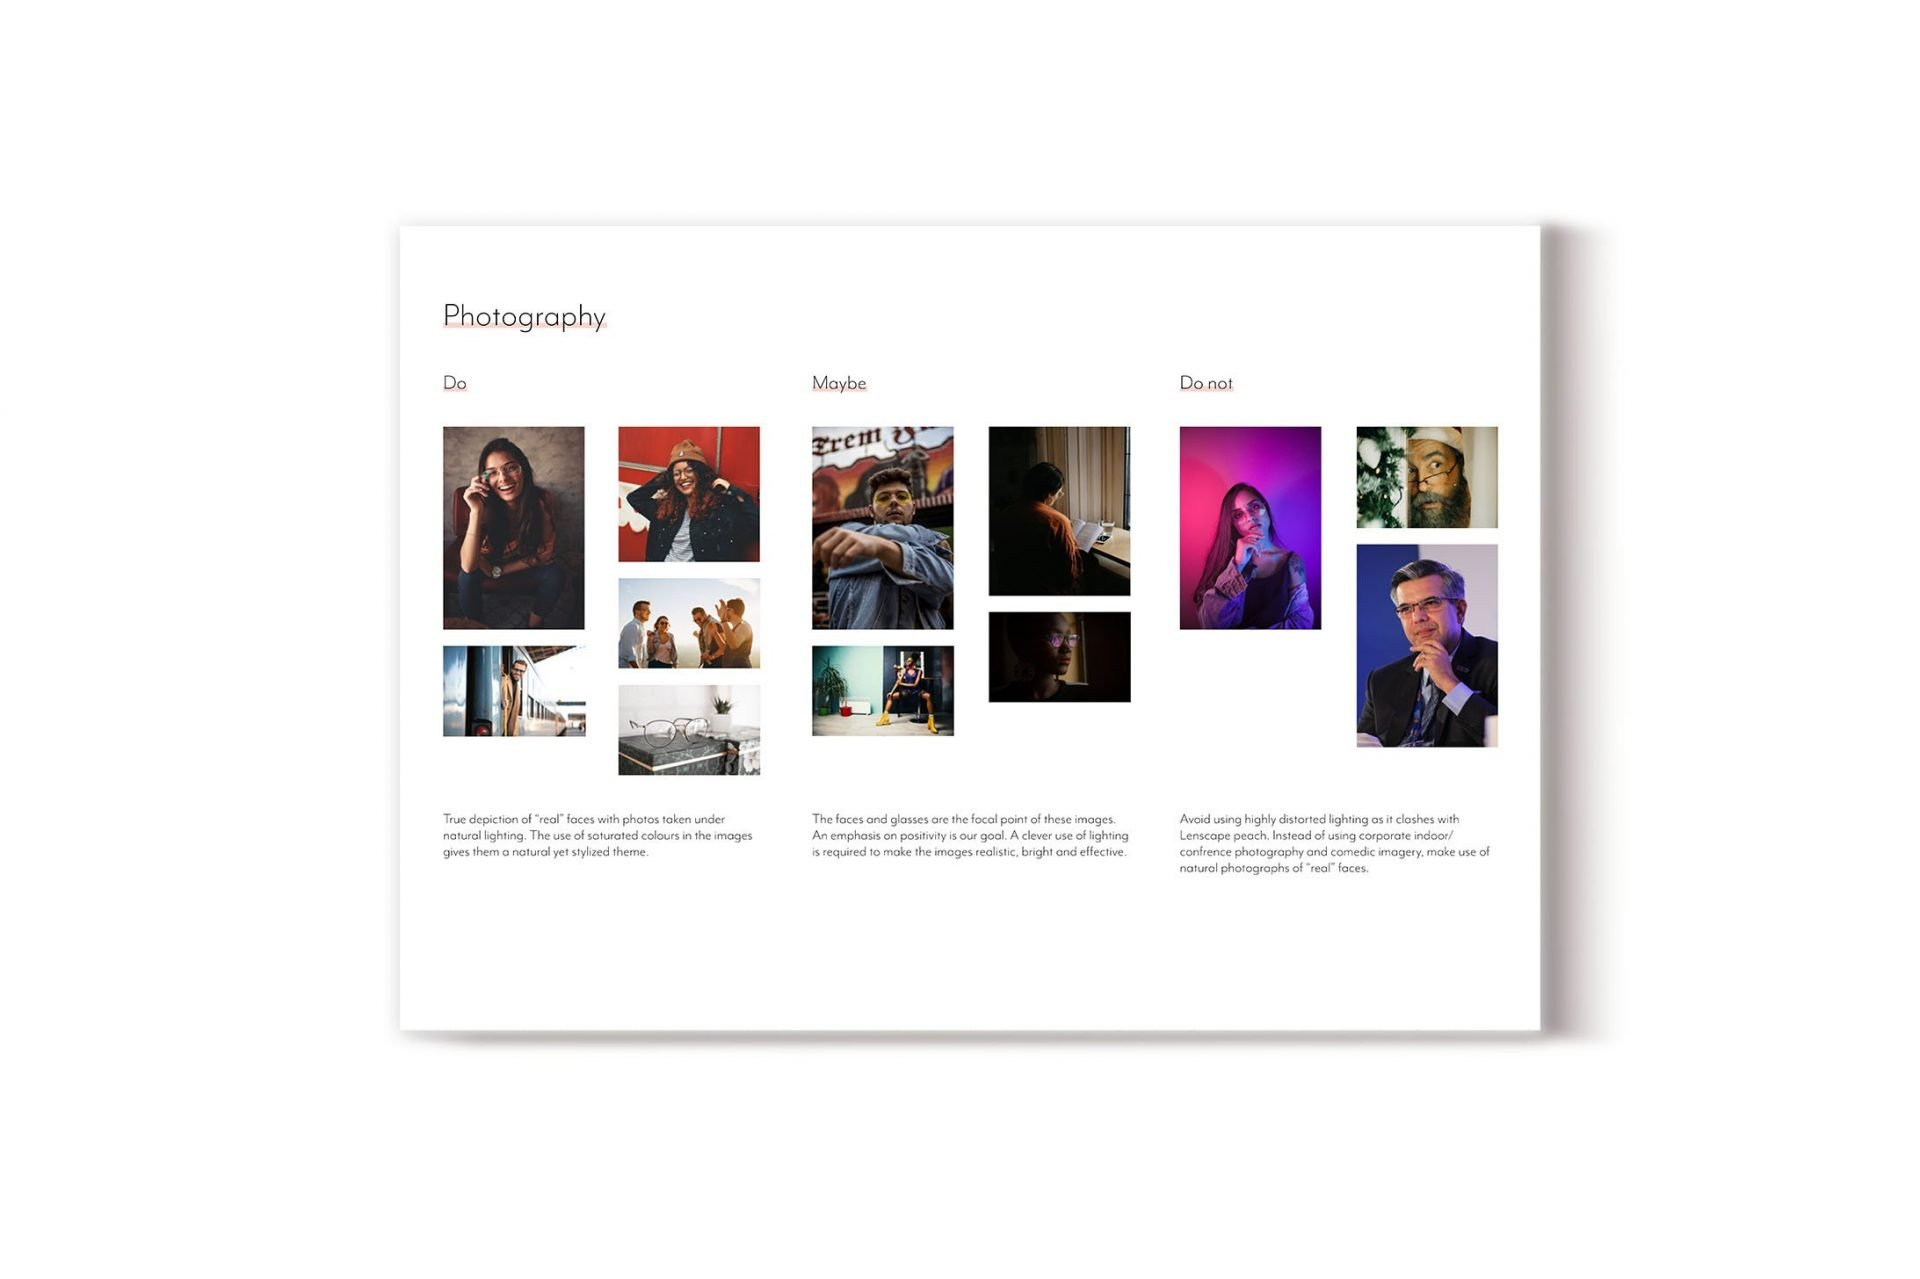 andrew tralongo how to create a brand style guide photography